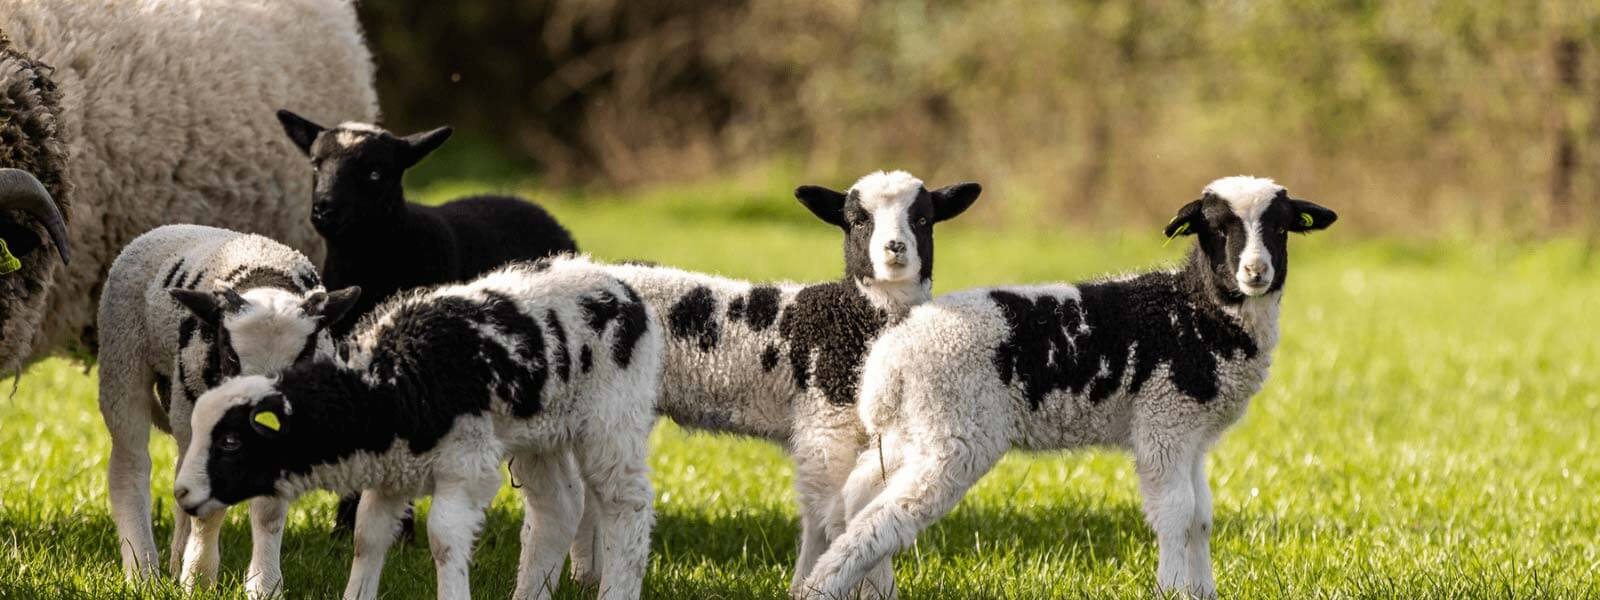 https://www.airfield.ie/wp-content/uploads/2021/05/Jacob-Lambs-at-Airfield-Estate-1.png